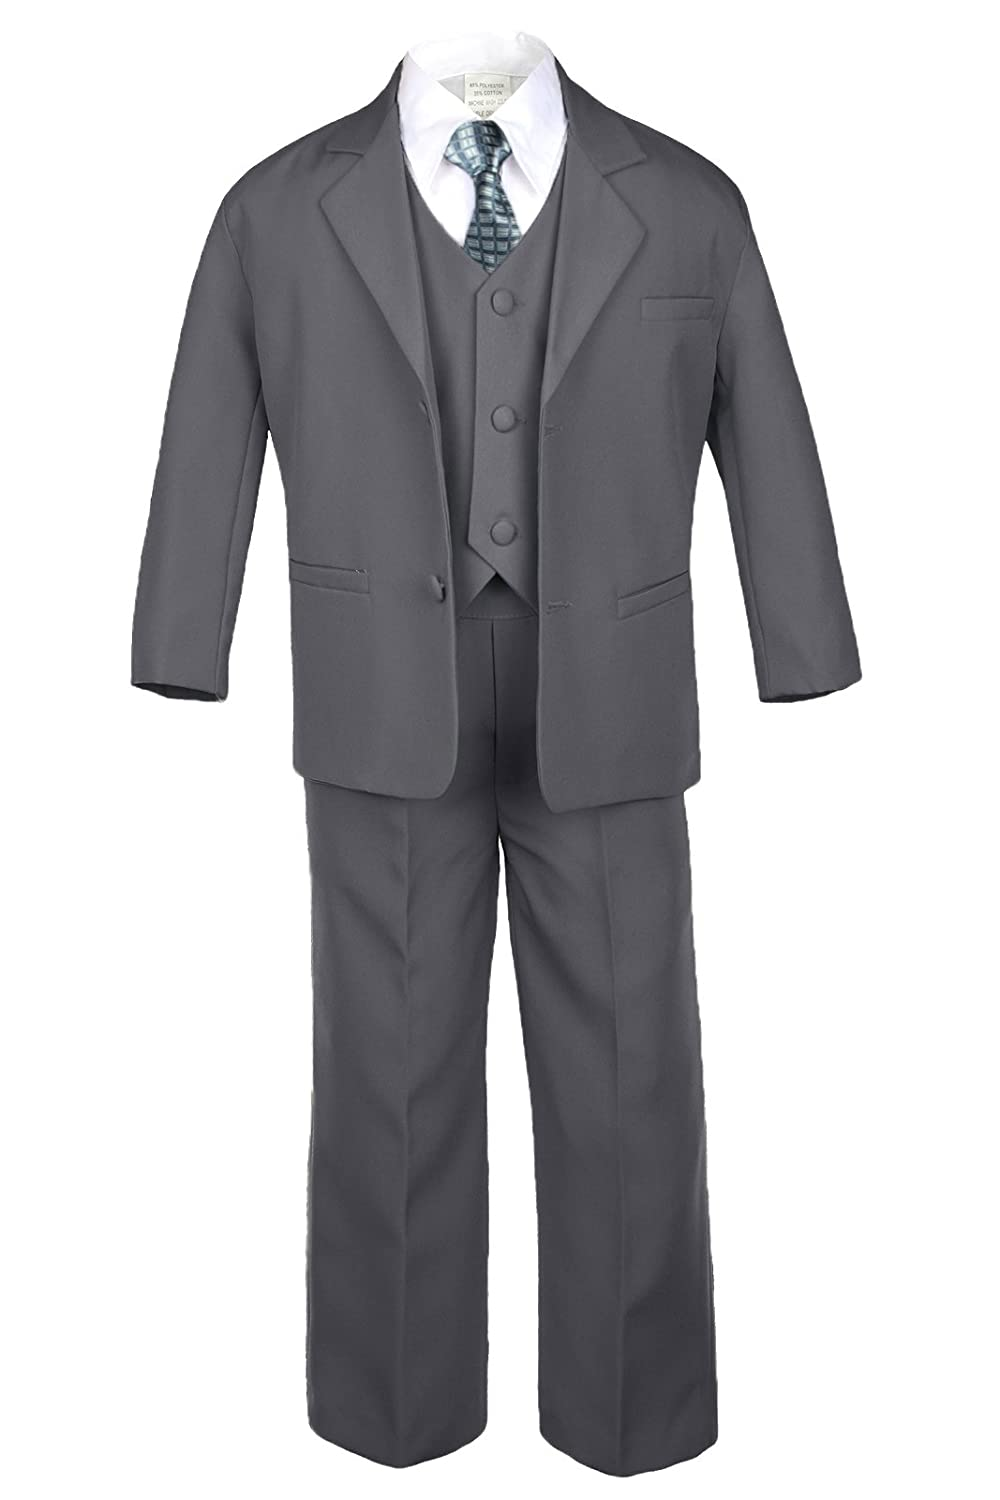 6pc Boy Baby Dark Gray Suit Set with Satin Checkered Necktie Outfits All Size (Medium:(6-12 months))